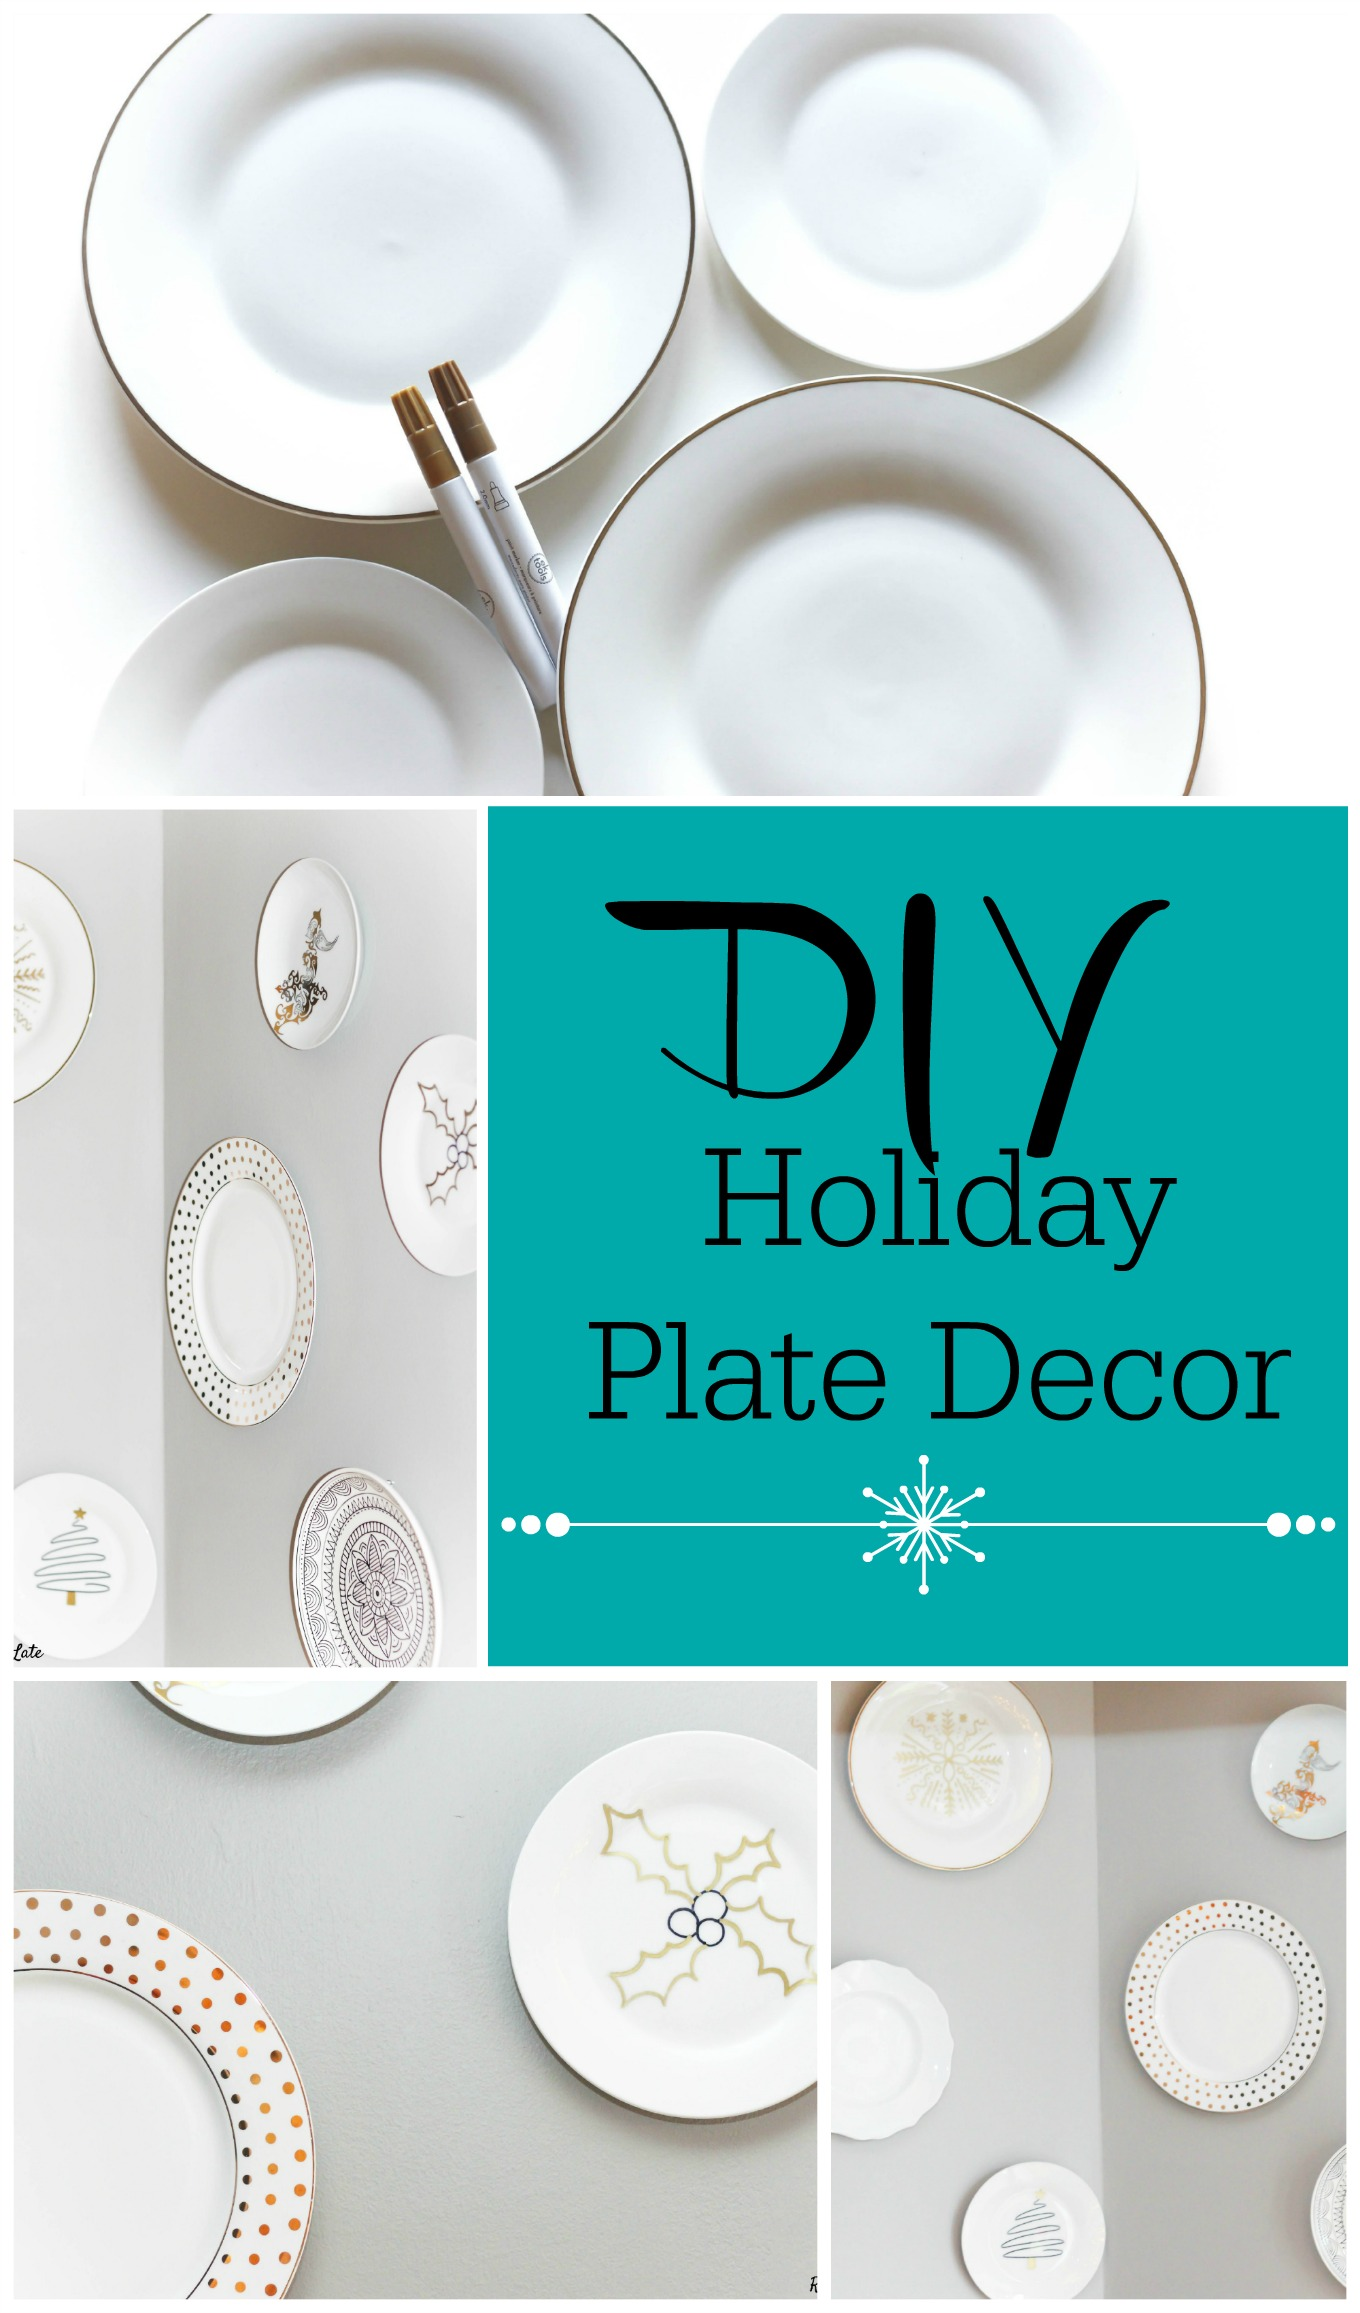 DIY Holiday Plate Wall Decor